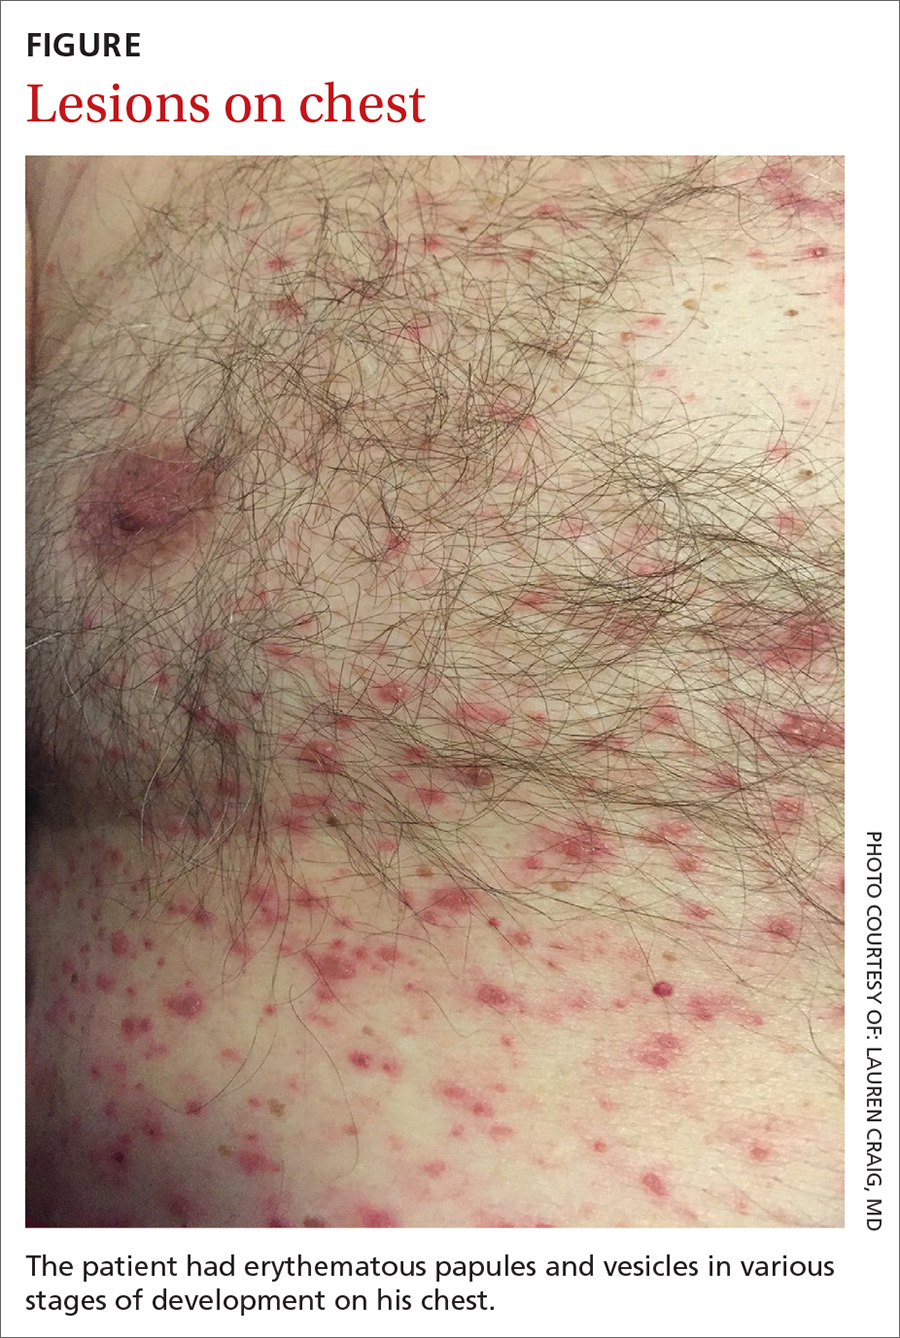 Lesions on chest image